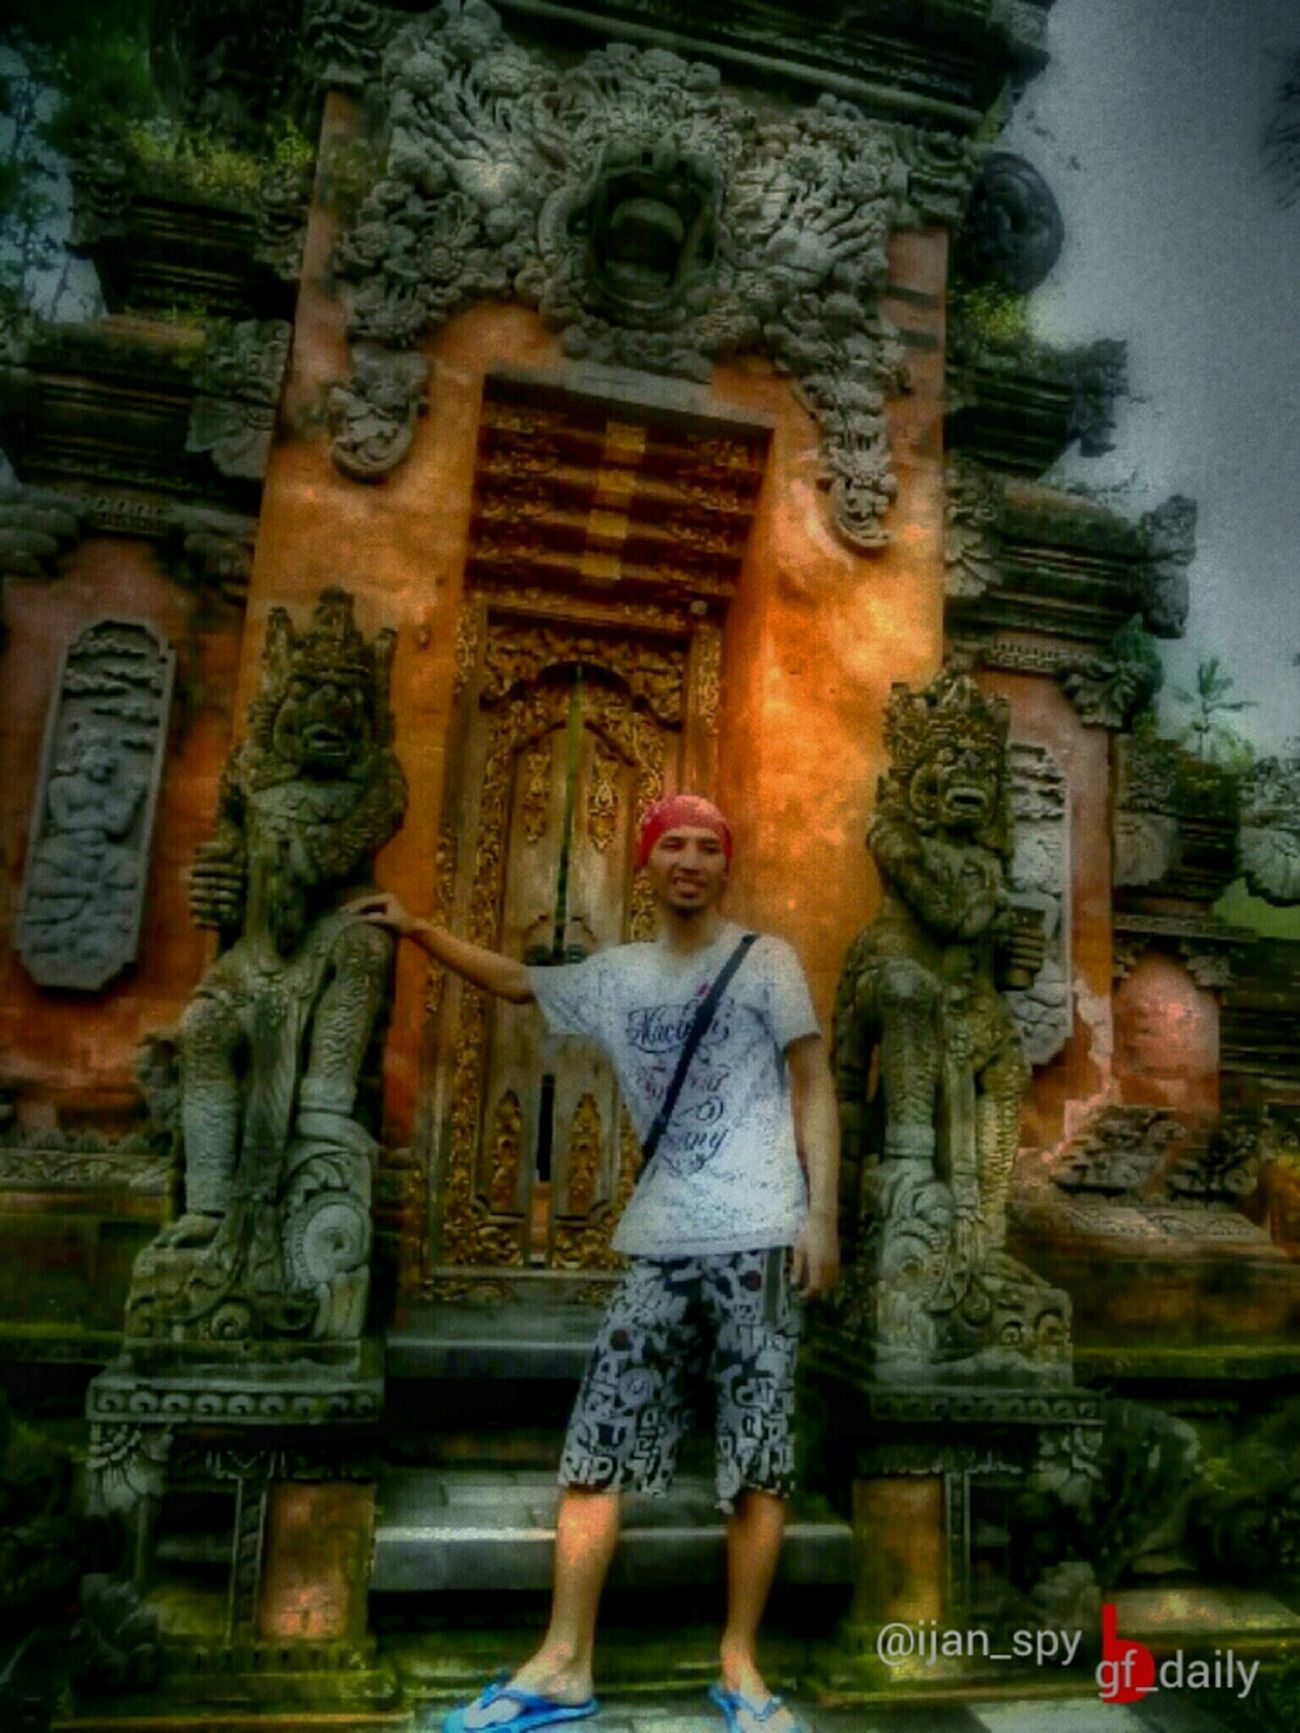 Front Of The Door Balinese Tample  Entry For : #gf_daily_door_013   #gang_family #gf_daily #gf_brothas #gf_indonesia